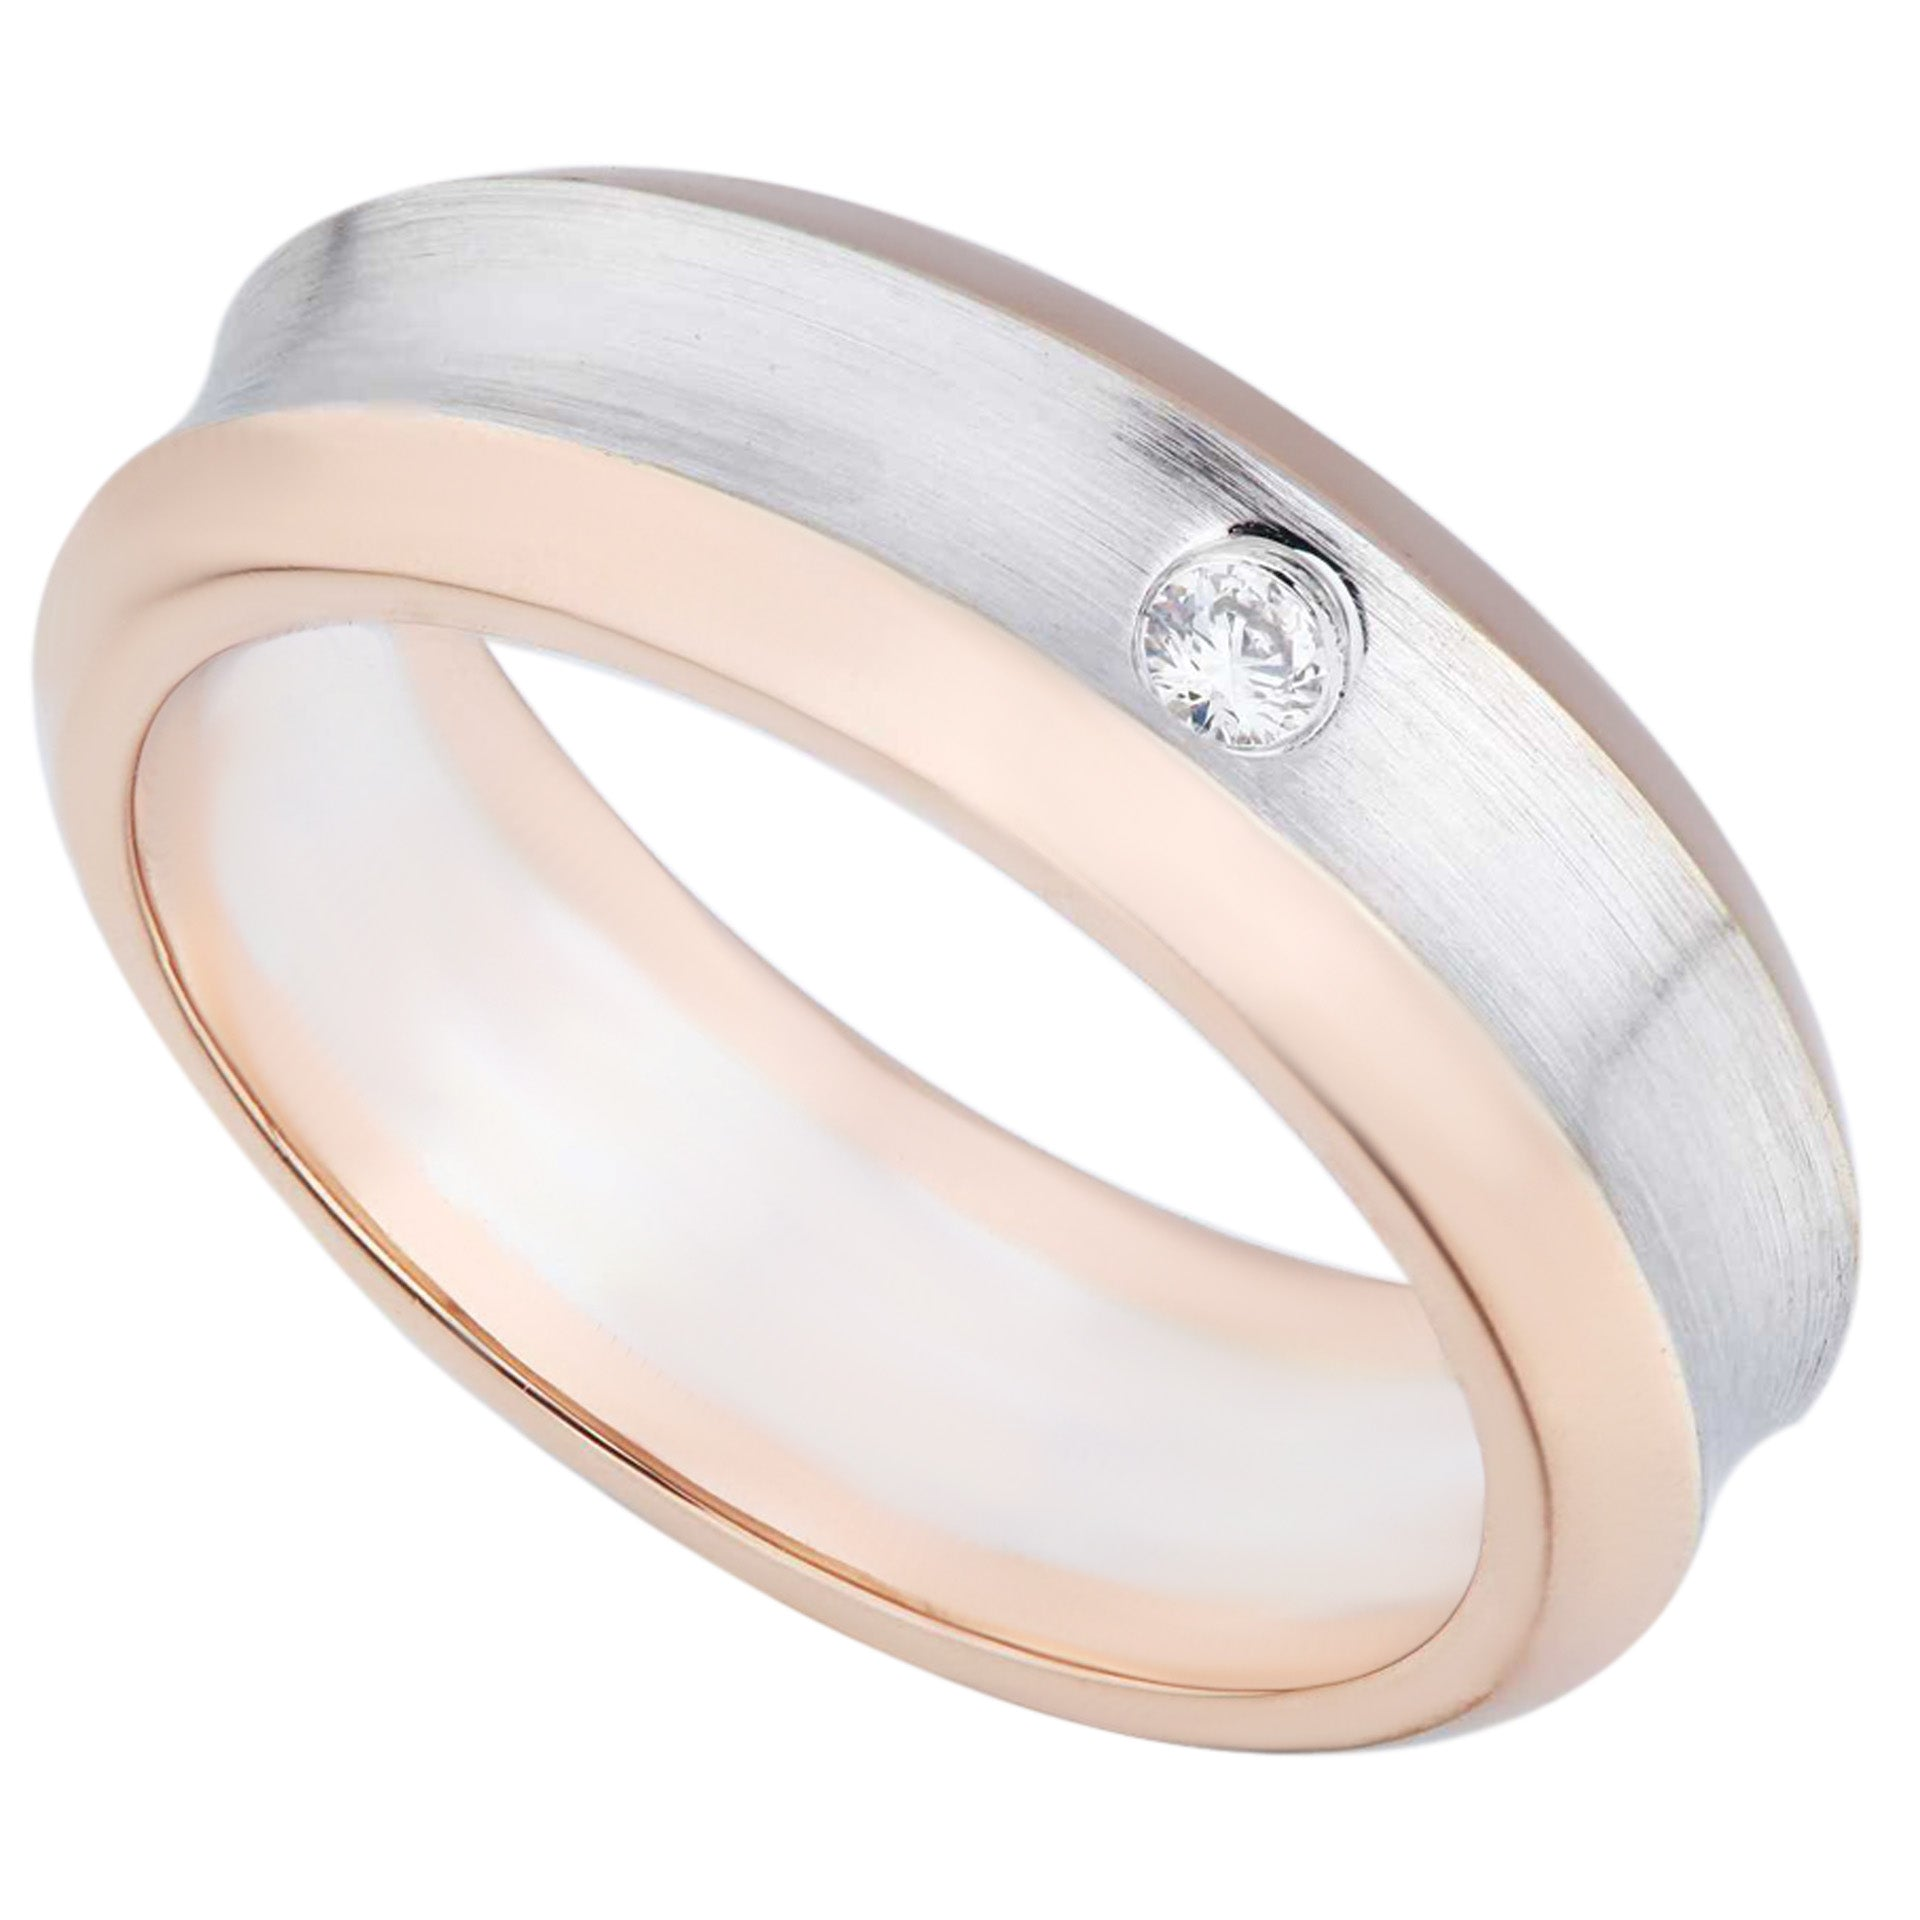 Comfort Fit Two Tones White & Rose Gold Diamond Ladies Ring - KARP Jewellery